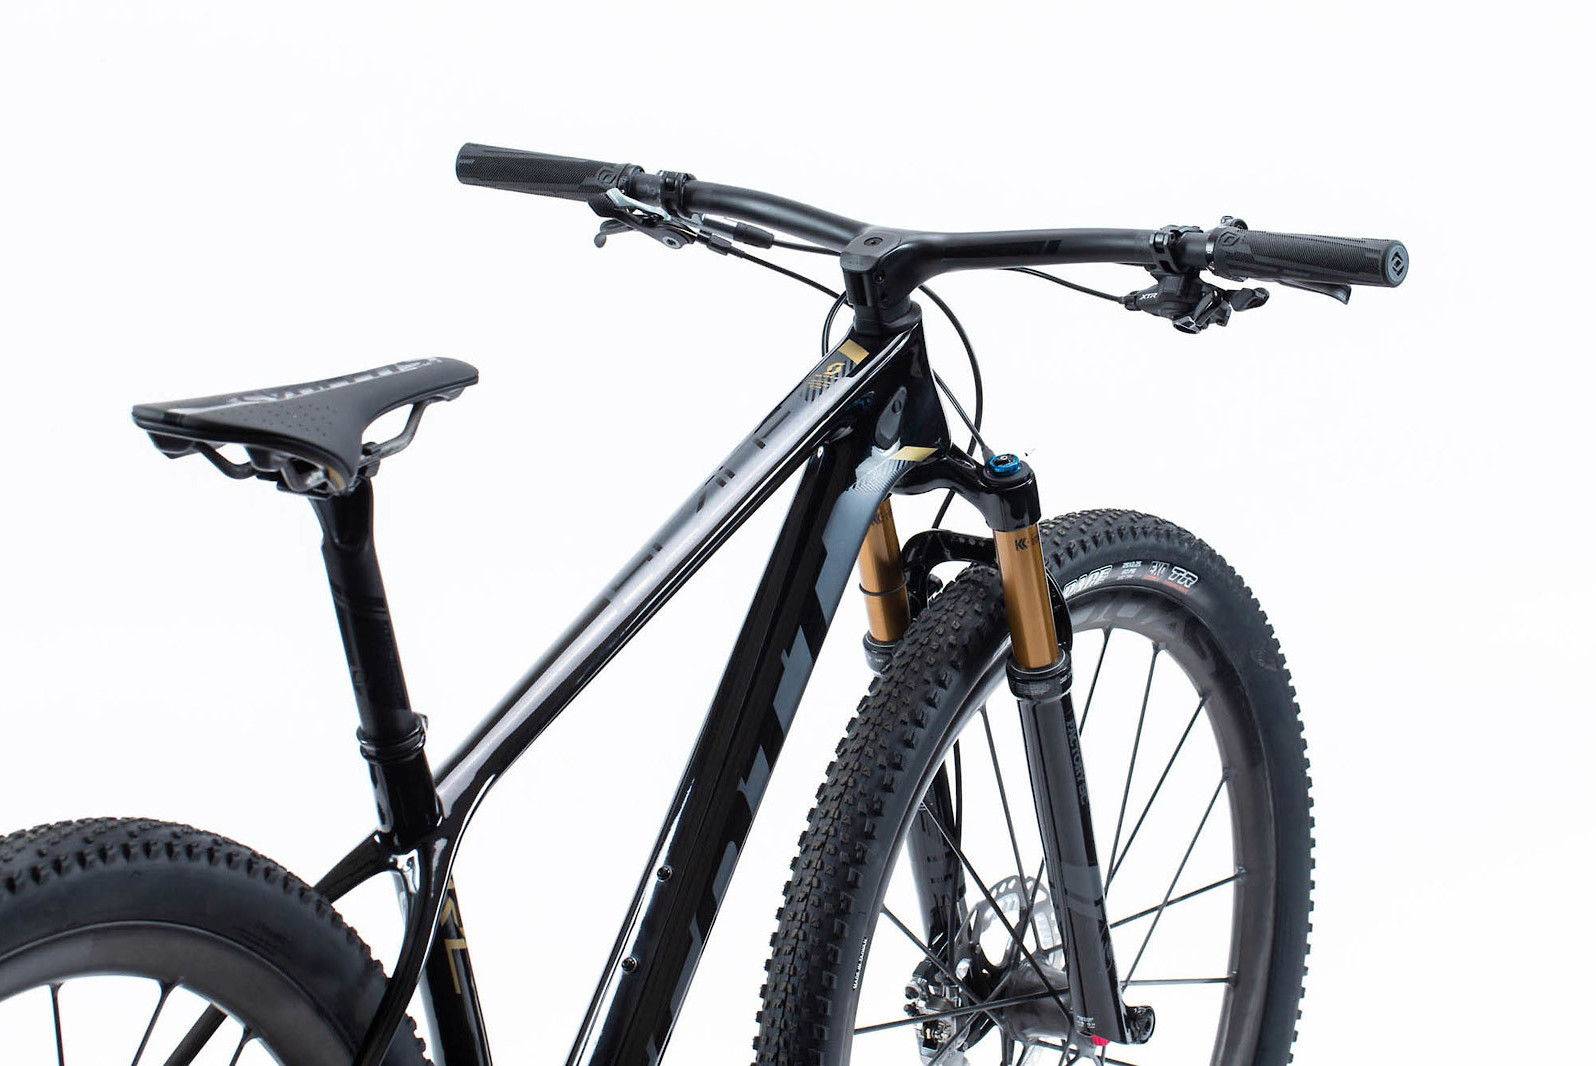 b15044fab9f 2019 Scott Scale RC 900 SL Bike - Reviews, Comparisons, Specs - Mountain  Bikes - Vital MTB